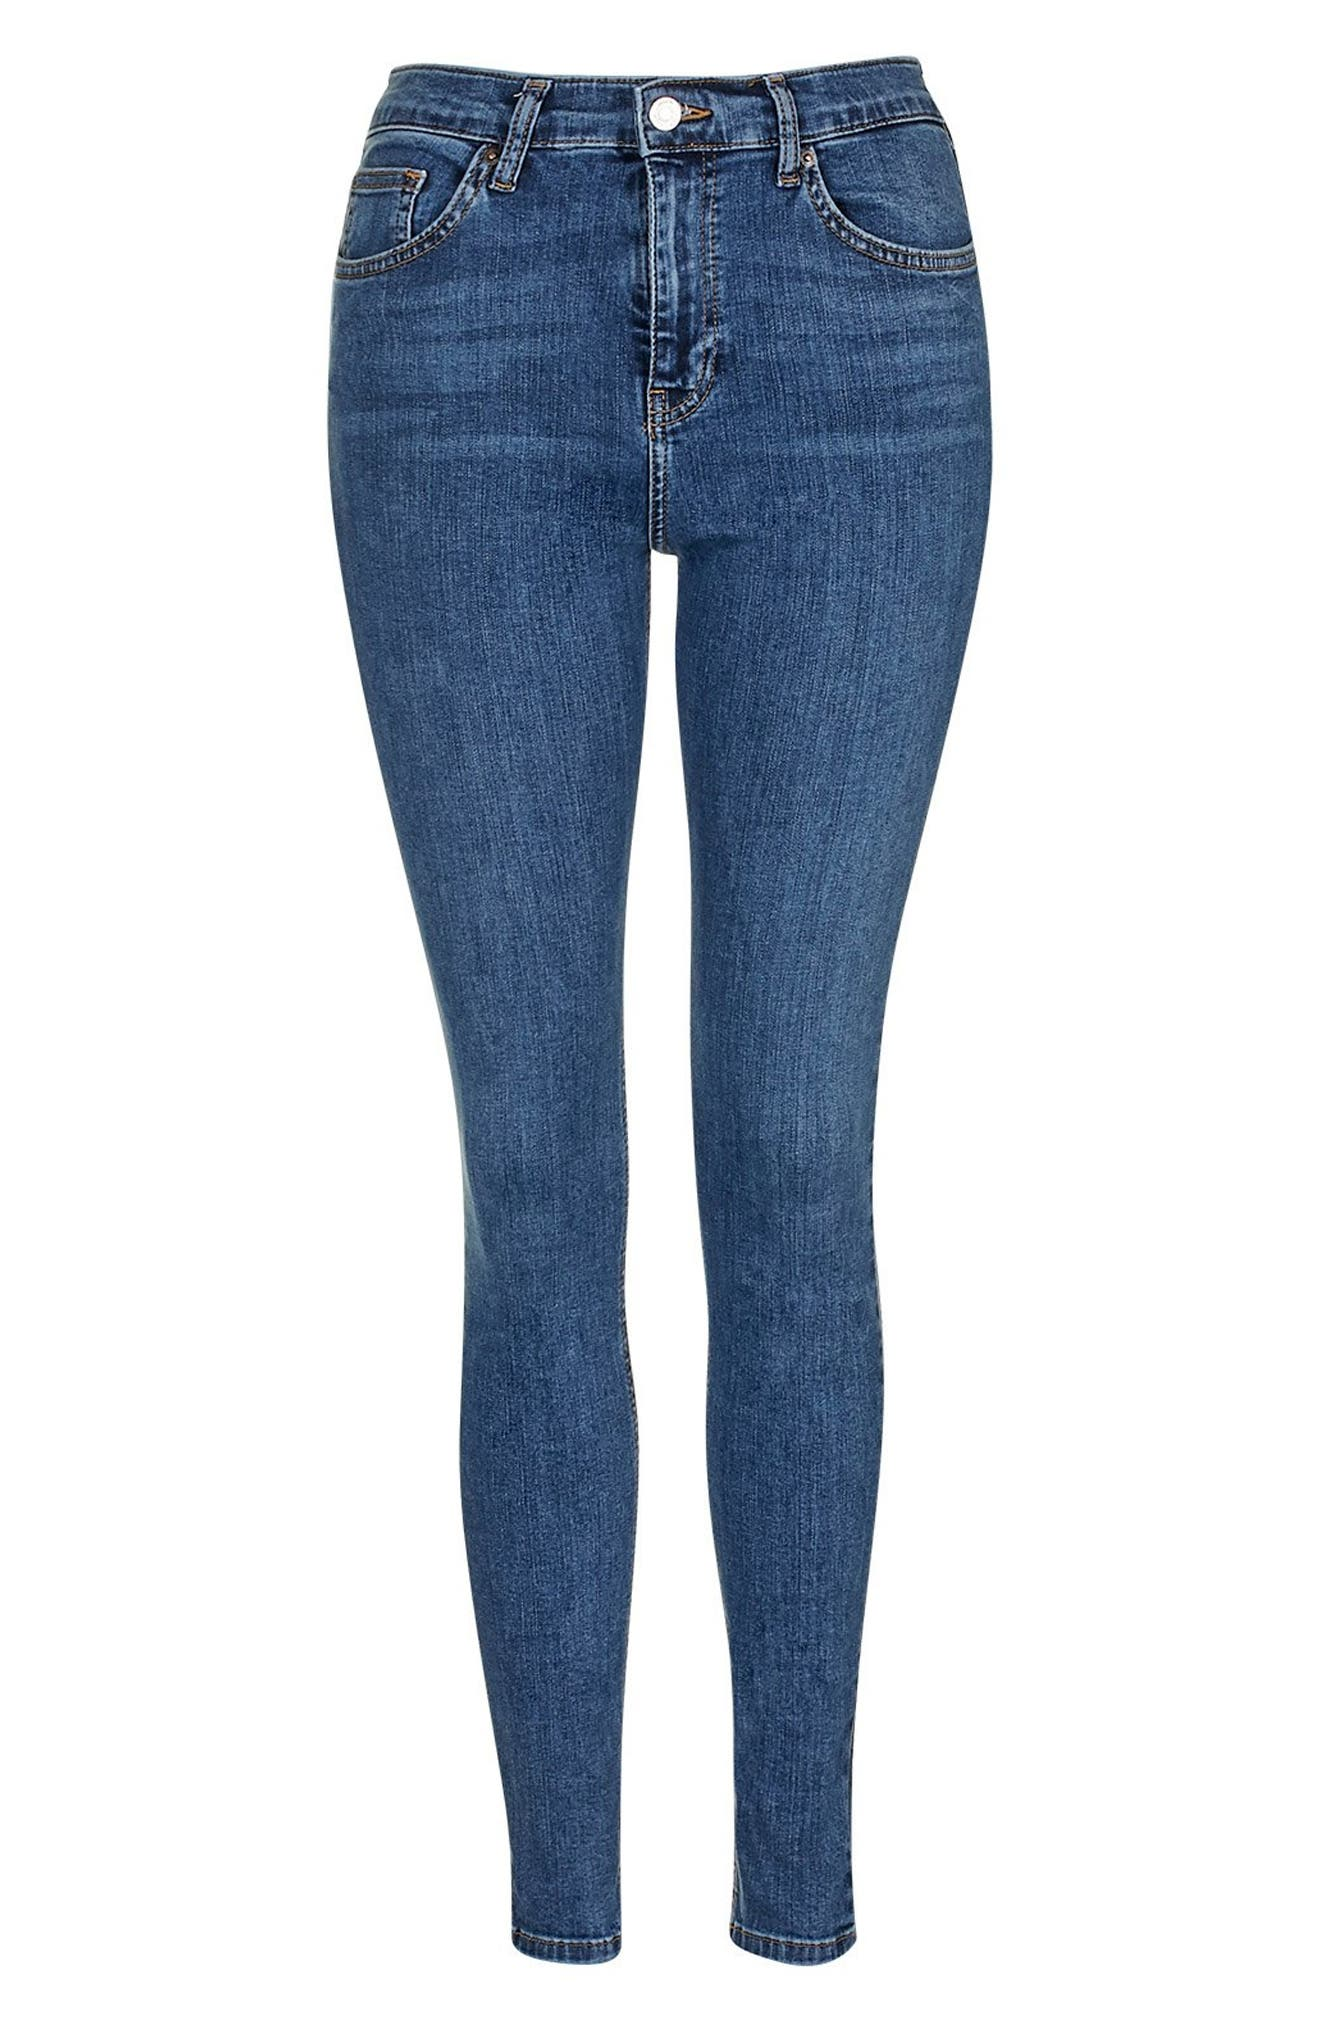 TOPSHOP, Jamie High Waist Skinny Jeans, Alternate thumbnail 4, color, MID BLUE